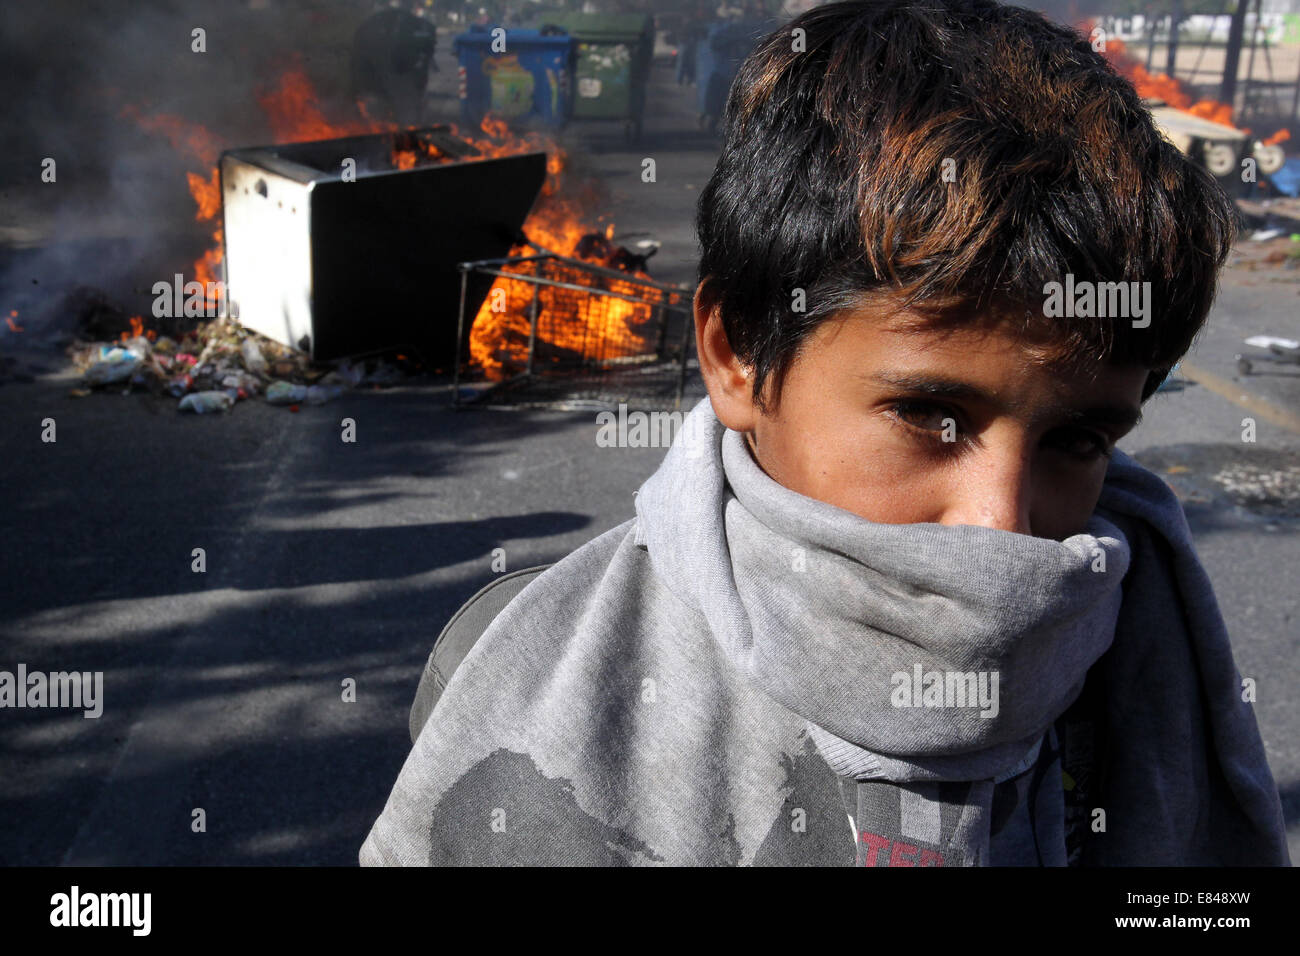 Athens. 30th Sep, 2014. A boy stands beside a burning barricade during a protest in Athens, Greece on Sept. 30, - Stock Image